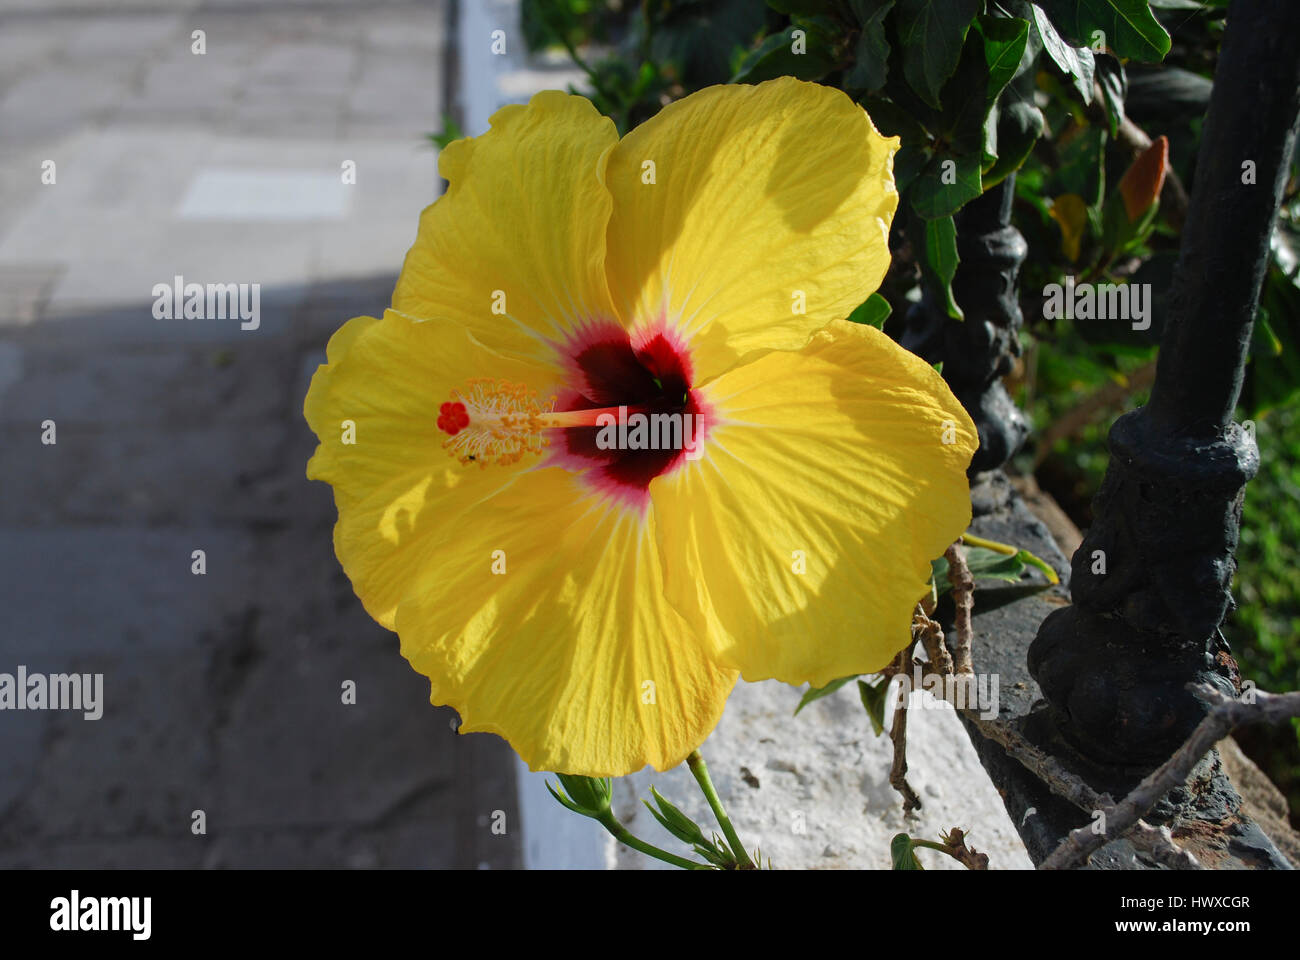 Hibiscus Yellow Flower With Red Center Stock Photo 136419607 Alamy